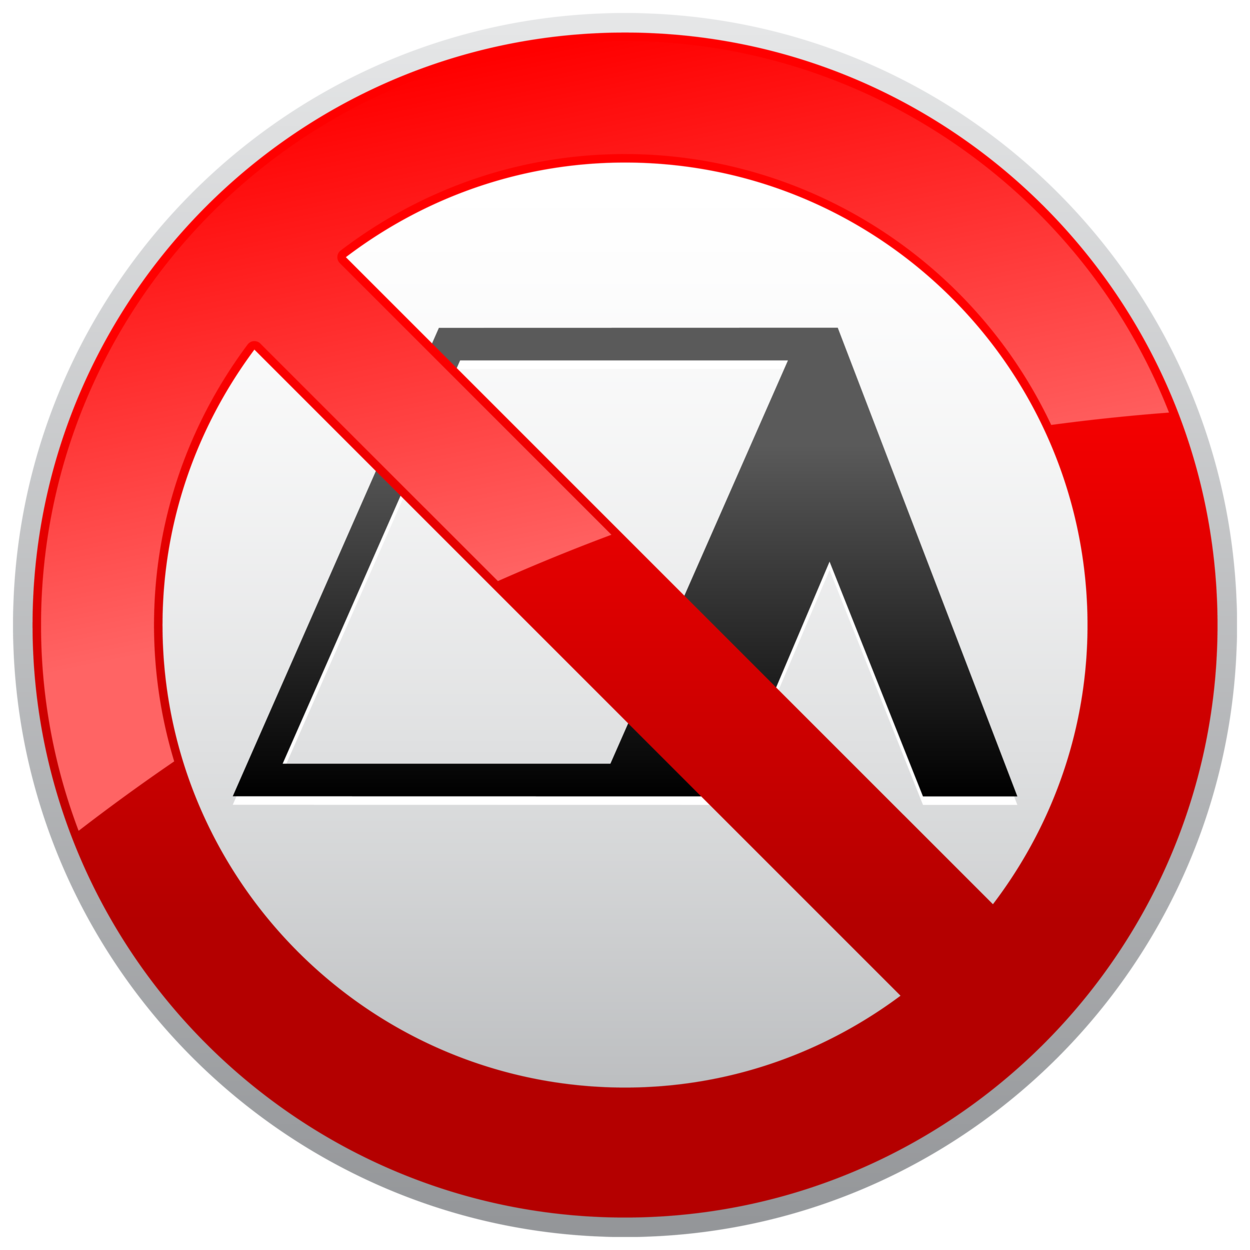 No Camping Prohibition Sign PNG Clipart